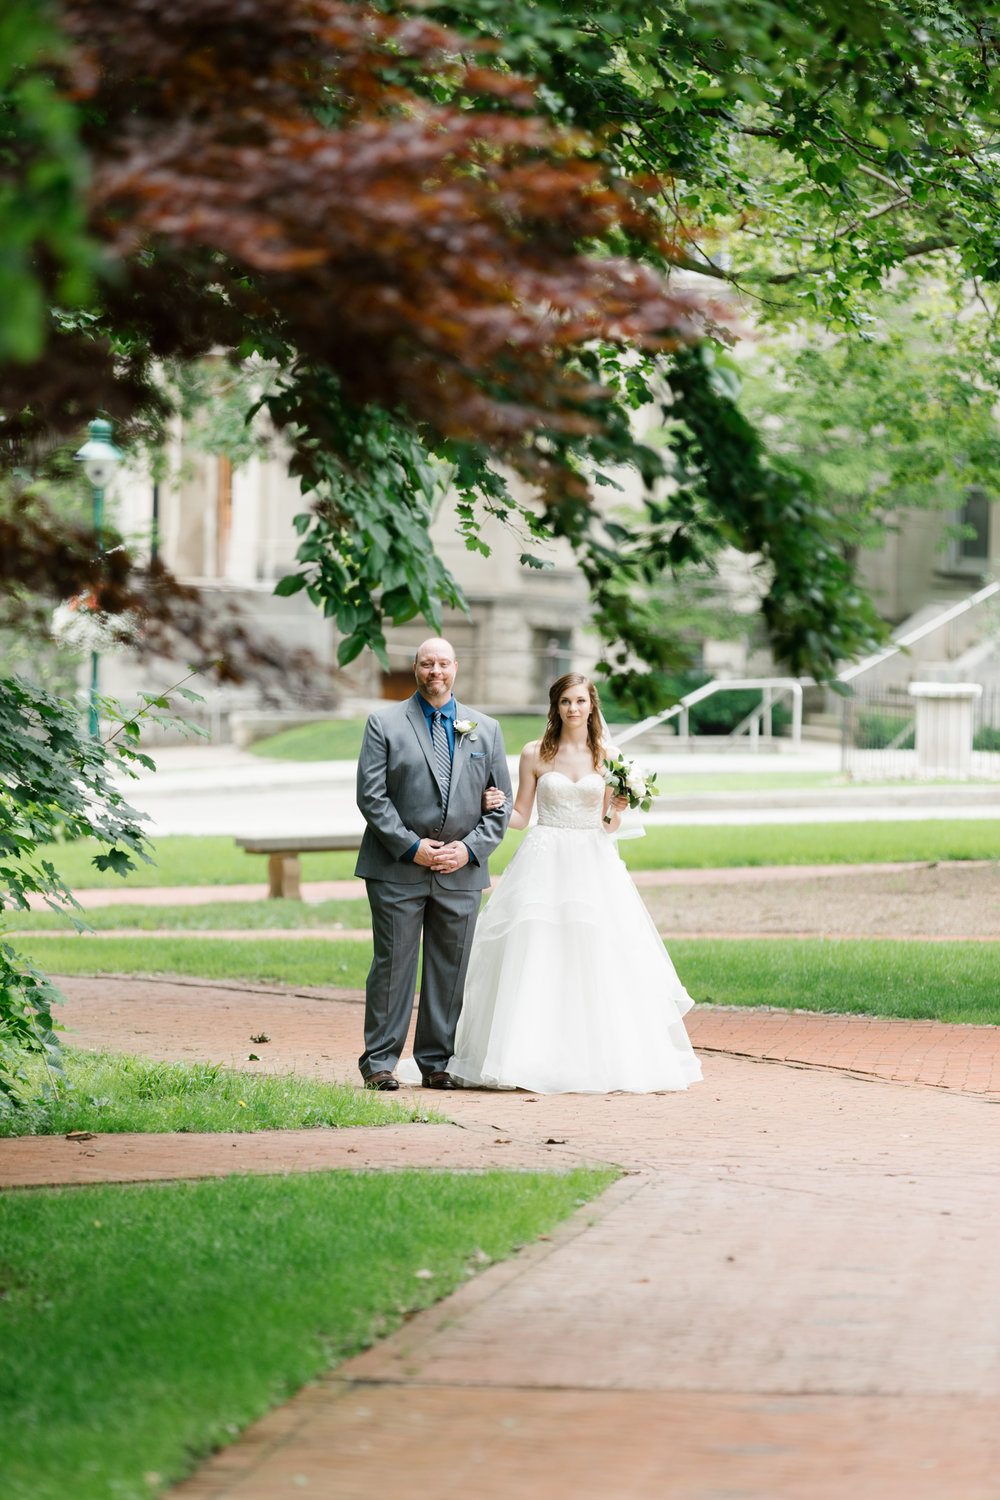 A photo of a bride walking down the aisle during her wedding at the Indiana Memorial Union at Indiana University in Bloomington, Indiana.